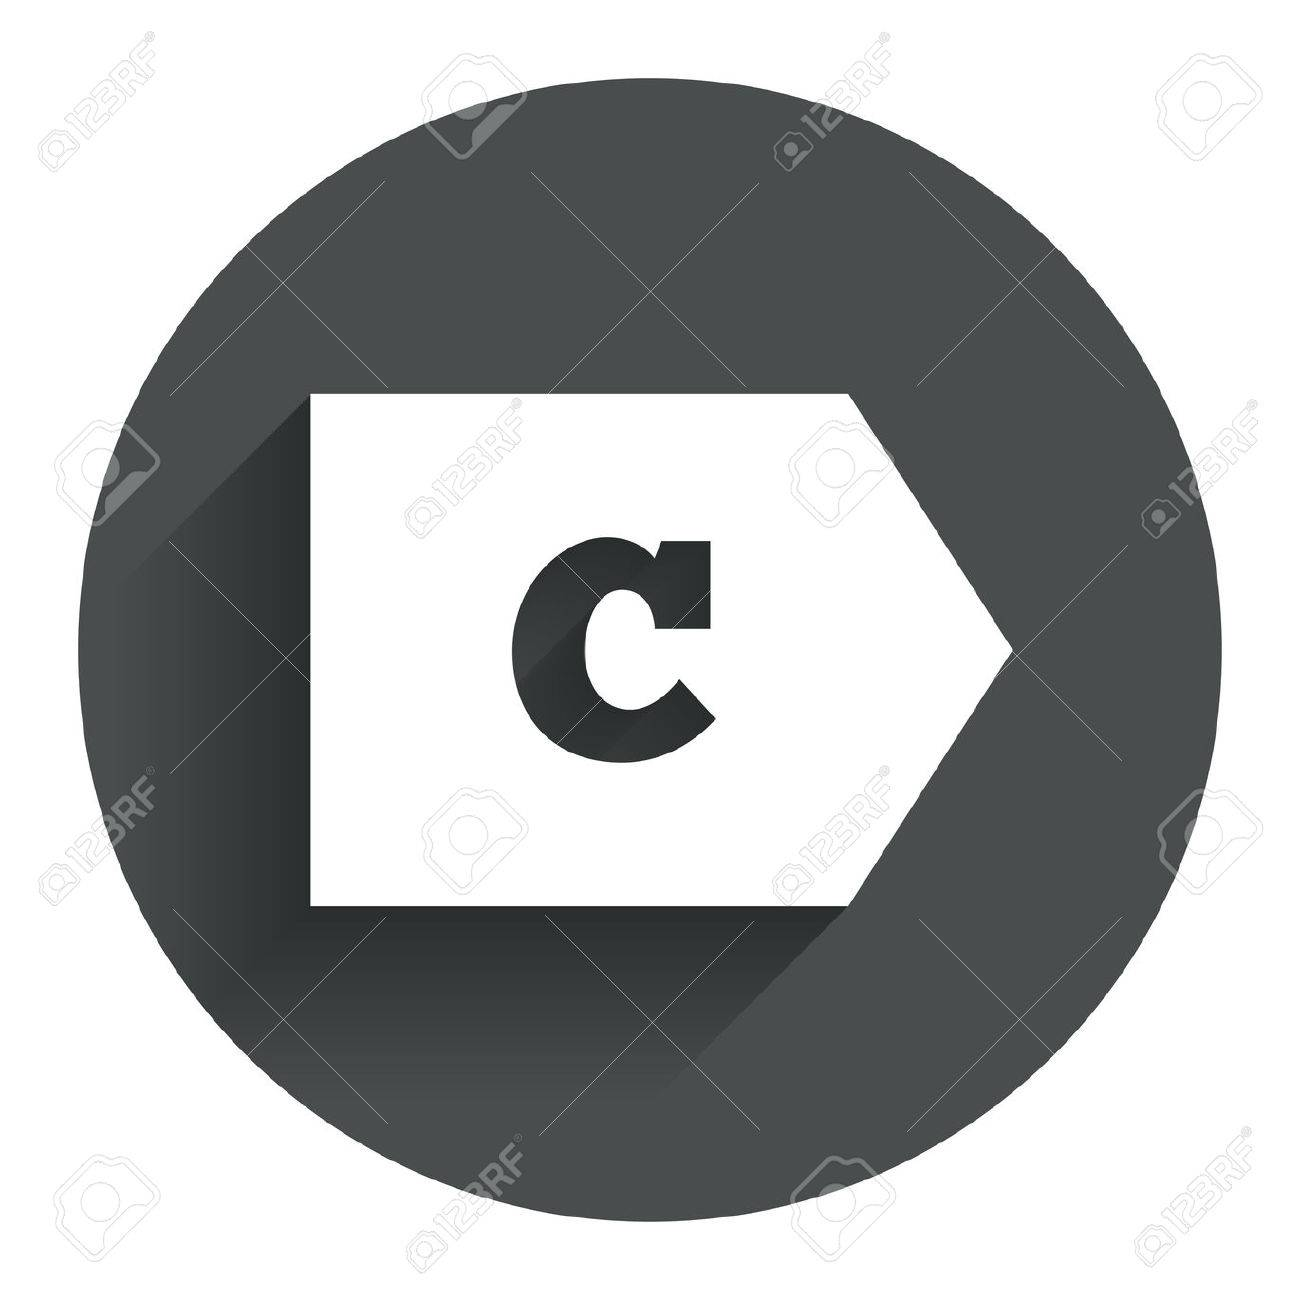 Energy efficiency class c sign icon energy consumption symbol energy efficiency class c sign icon energy consumption symbol circle flat button with shadow biocorpaavc Images